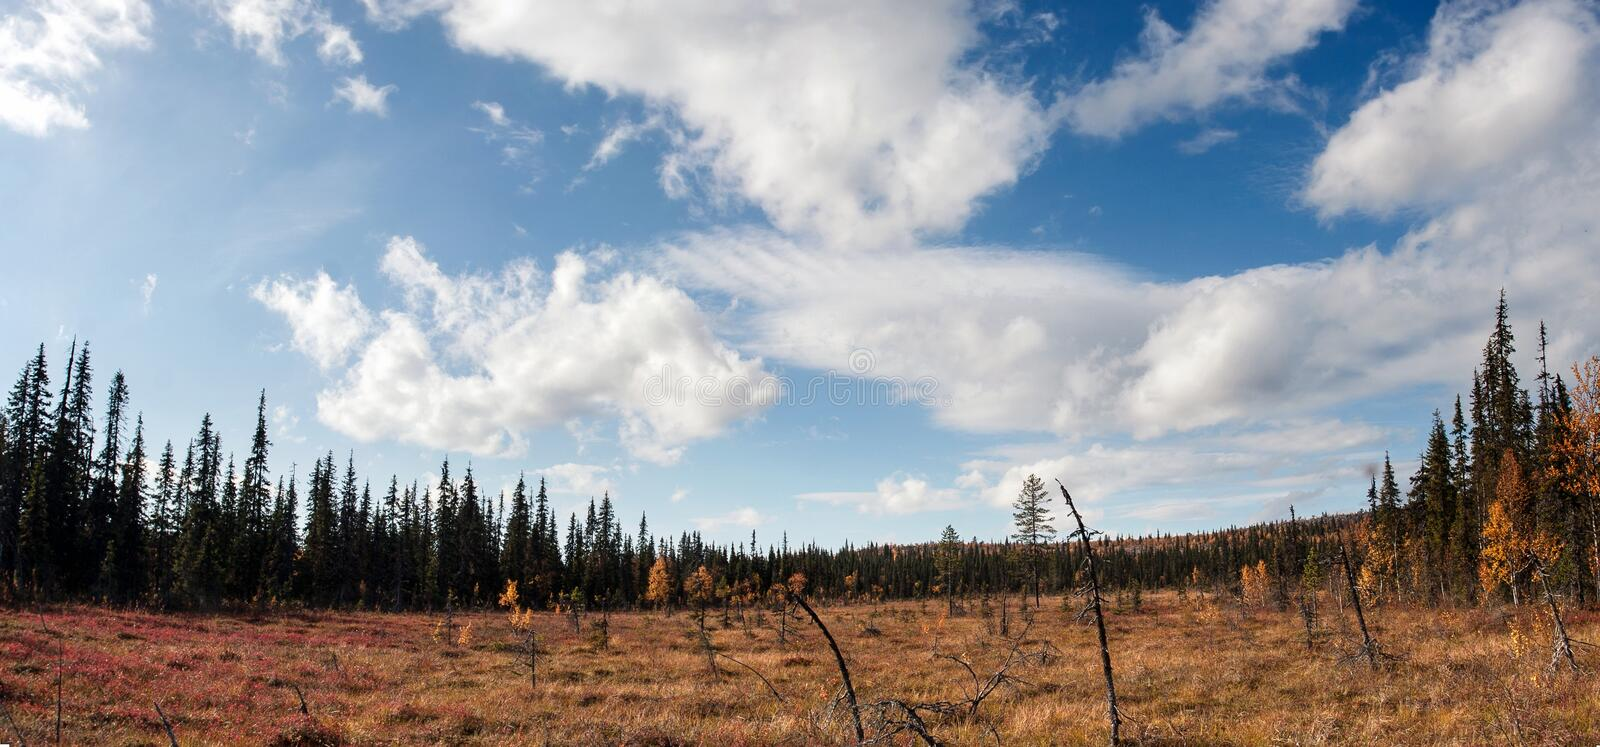 Herbst in Taiga Forest With Massive Clouds stockfotografie